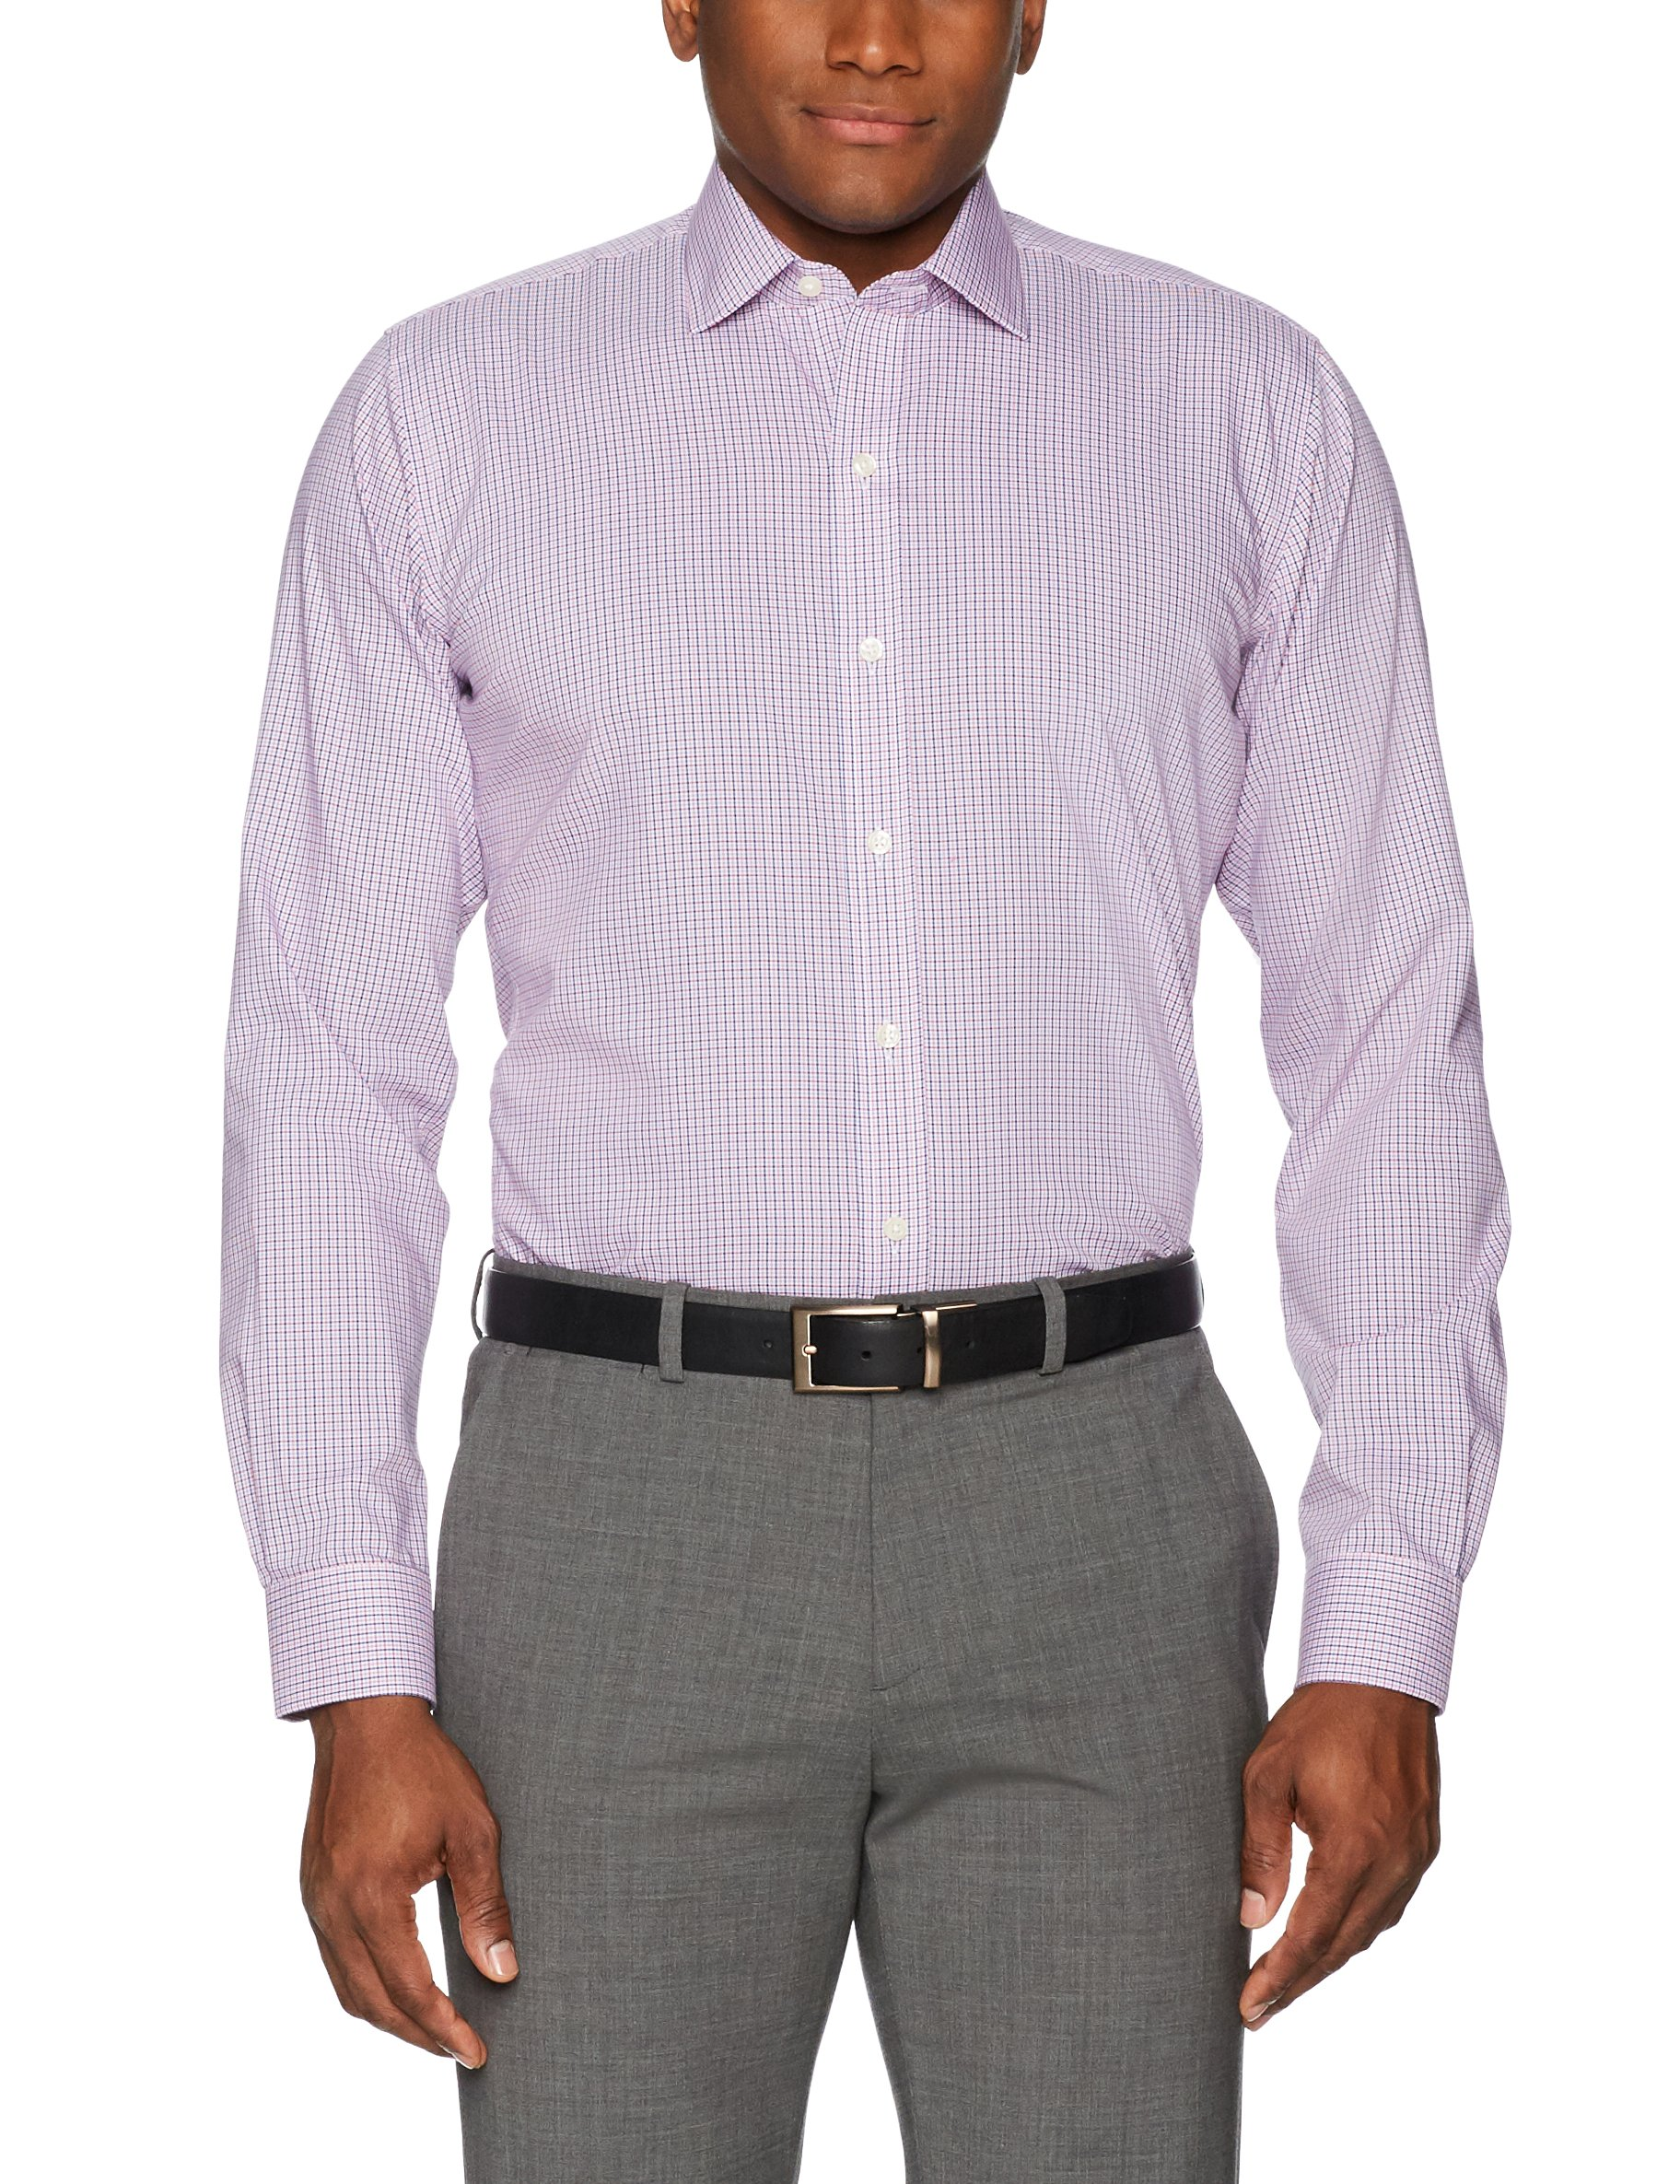 Buttoned Down Men's Slim Fit Spread-Collar Non-Iron Dress Shirt, Berry/Red/Navy Tatersol, 17.5'' Neck 37'' Sleeve by Buttoned Down (Image #3)